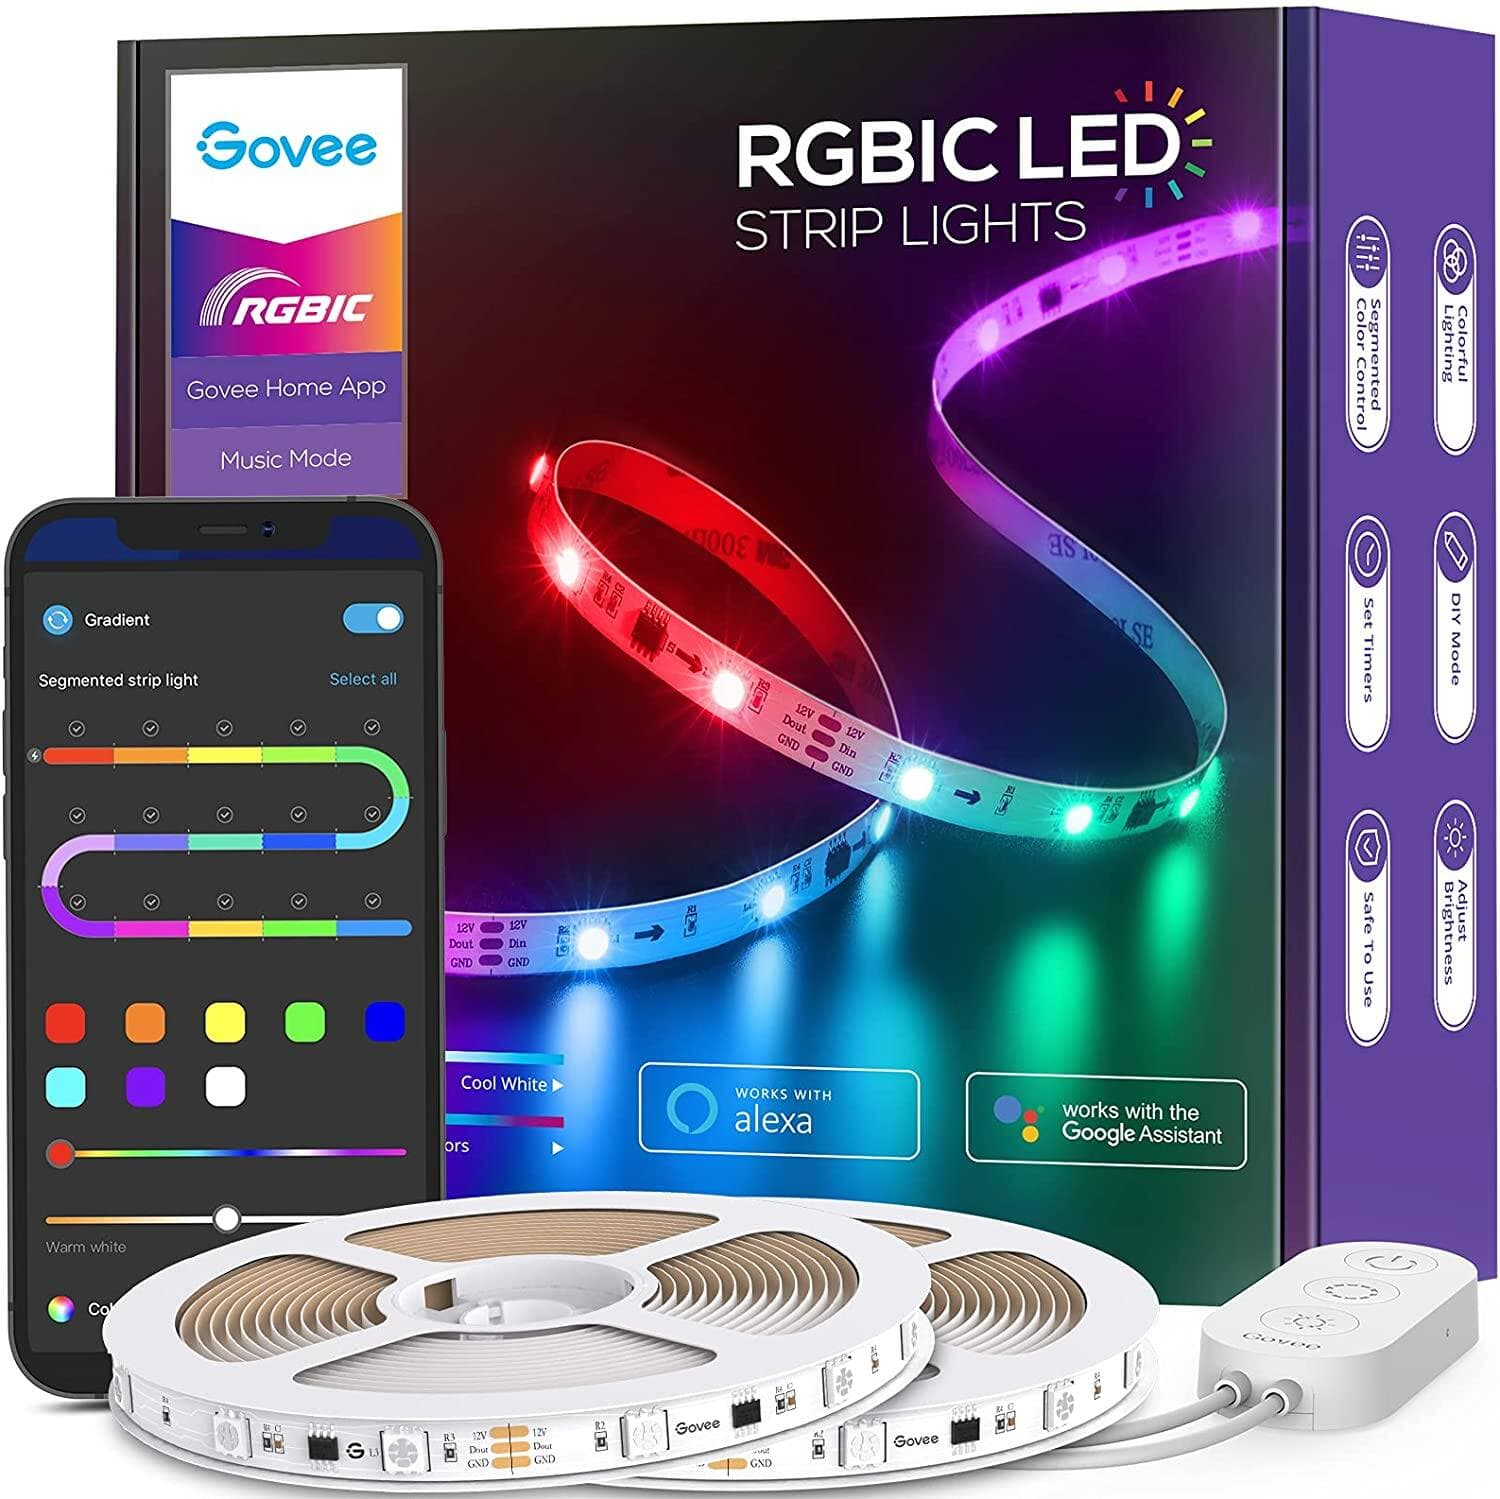 Govee 32.8ft Wifi RGBIC LED Strip Lights, Smart Segmented Color Control, Works with Alexa and Google Assistant, Music Sync,  (2x16.4ft)- $32.19 + FS